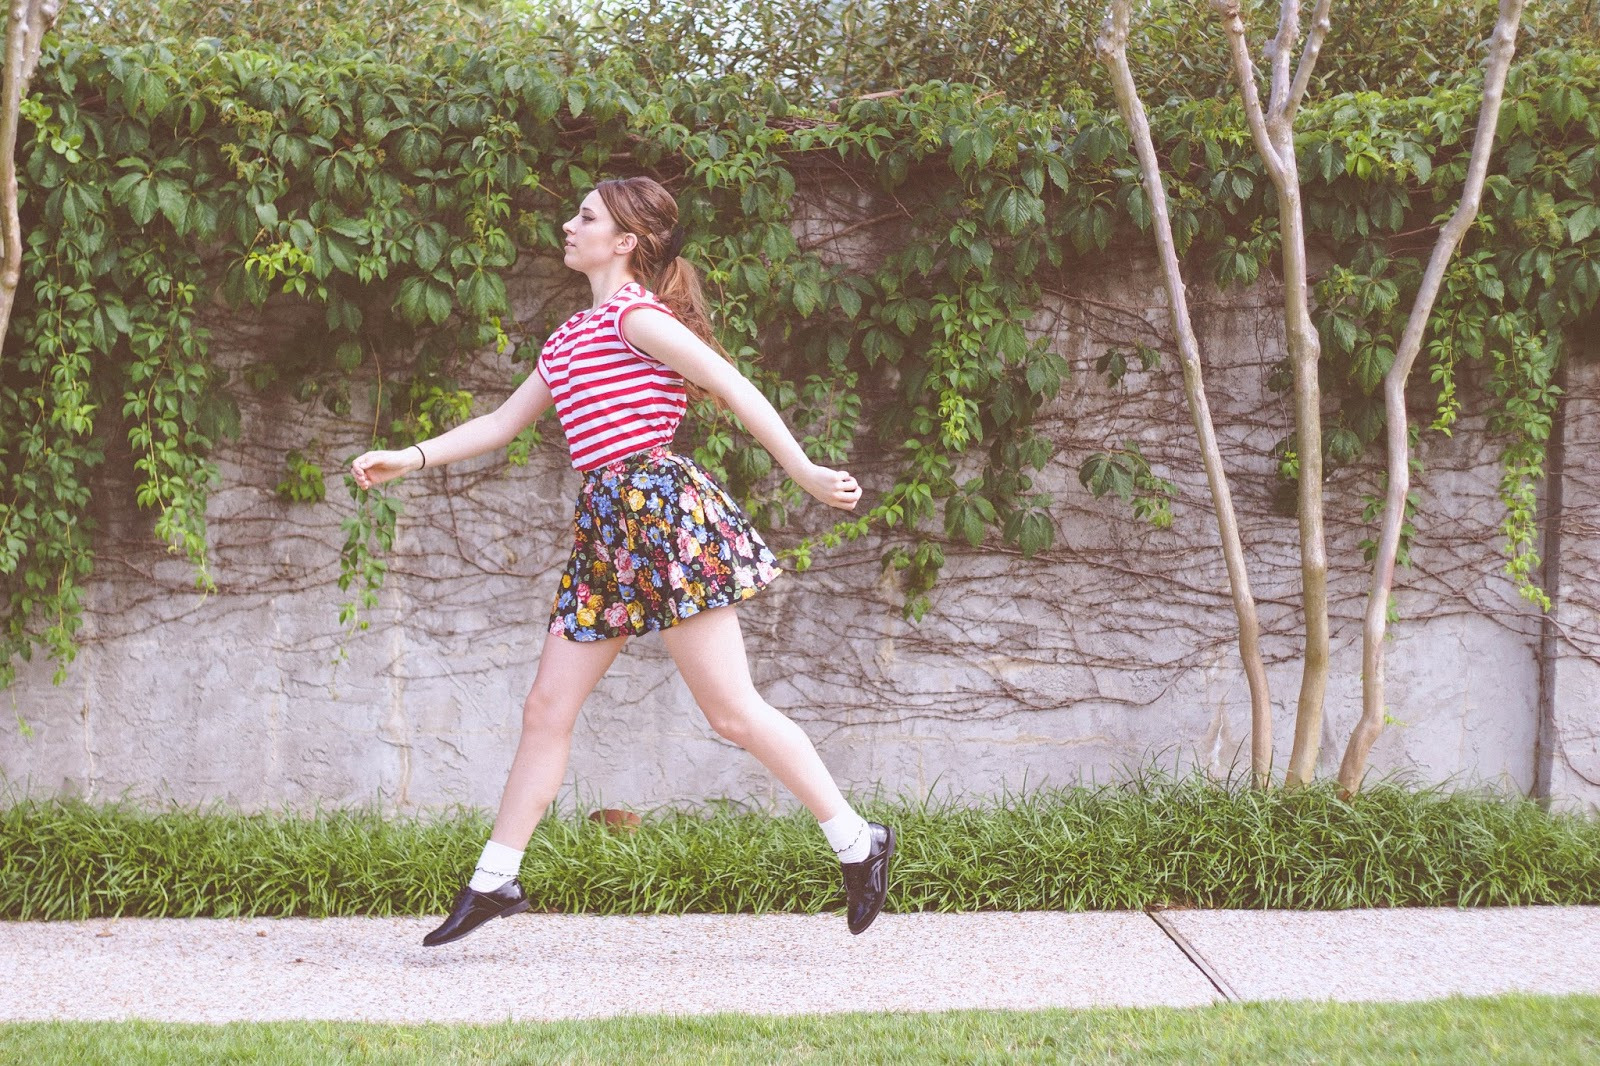 Mixing prints outfit, striped t shirt, floral mini skirt, forever 21, asos, retro style, 60's style, style, fashion, girly, french, lana del rey style, taylor swift style, personal style blogger, film blogger, movie blogger. cinema, vintage